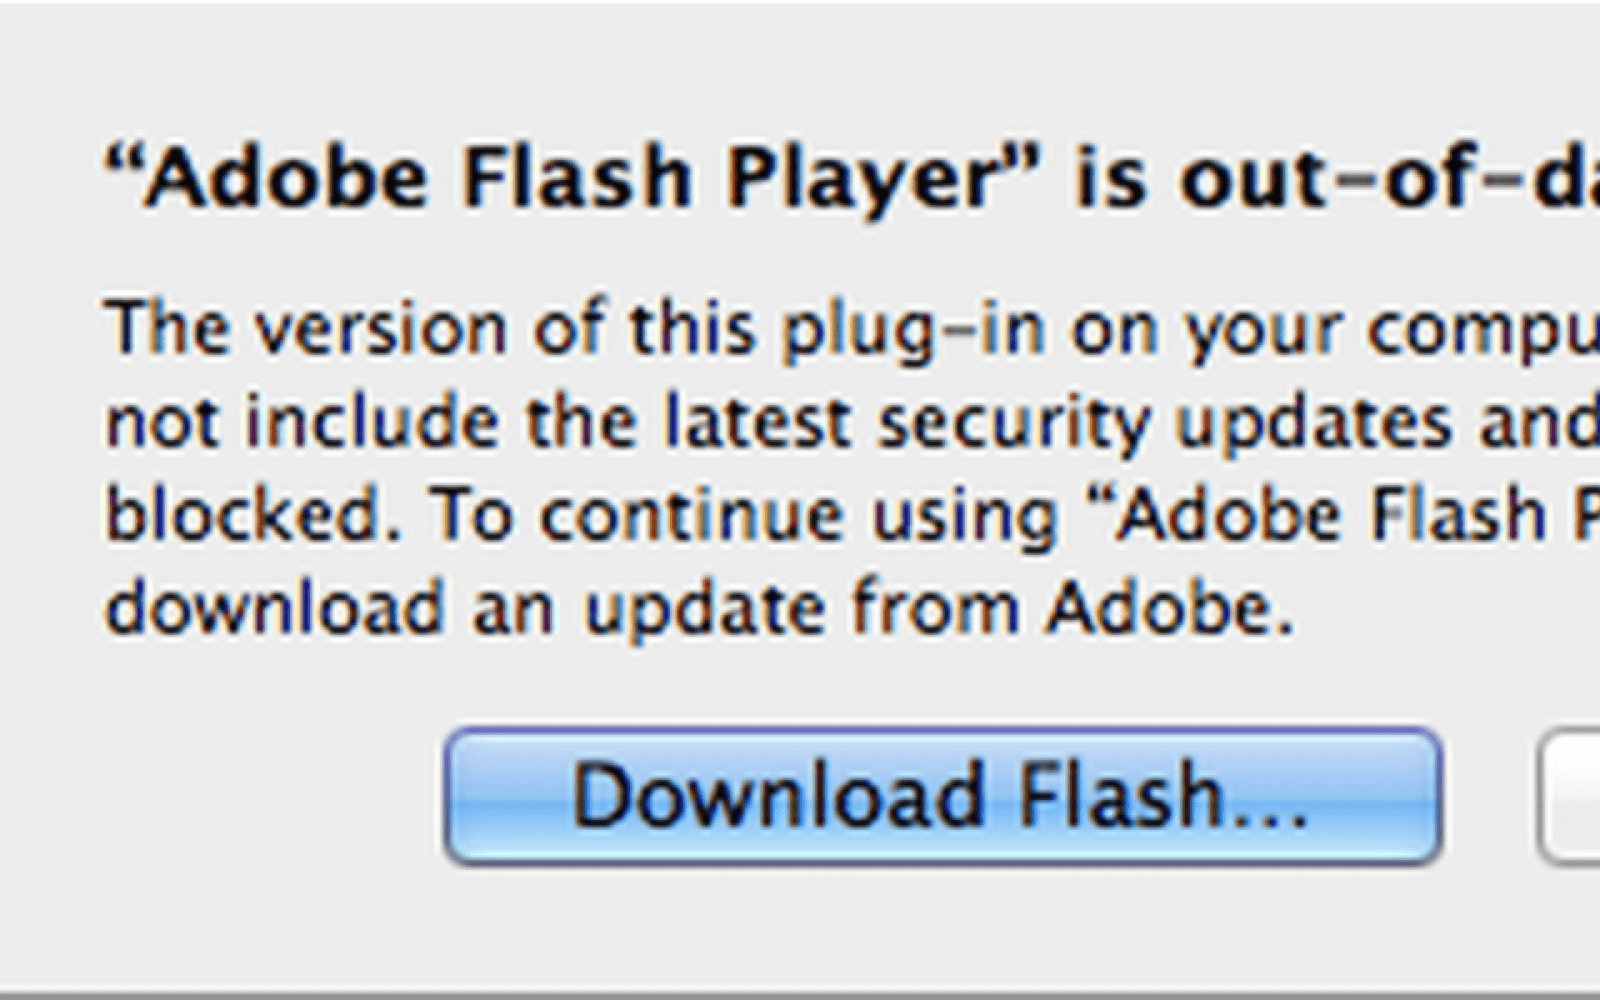 Apple pushes Flash Player update to address security issues - 9to5Mac